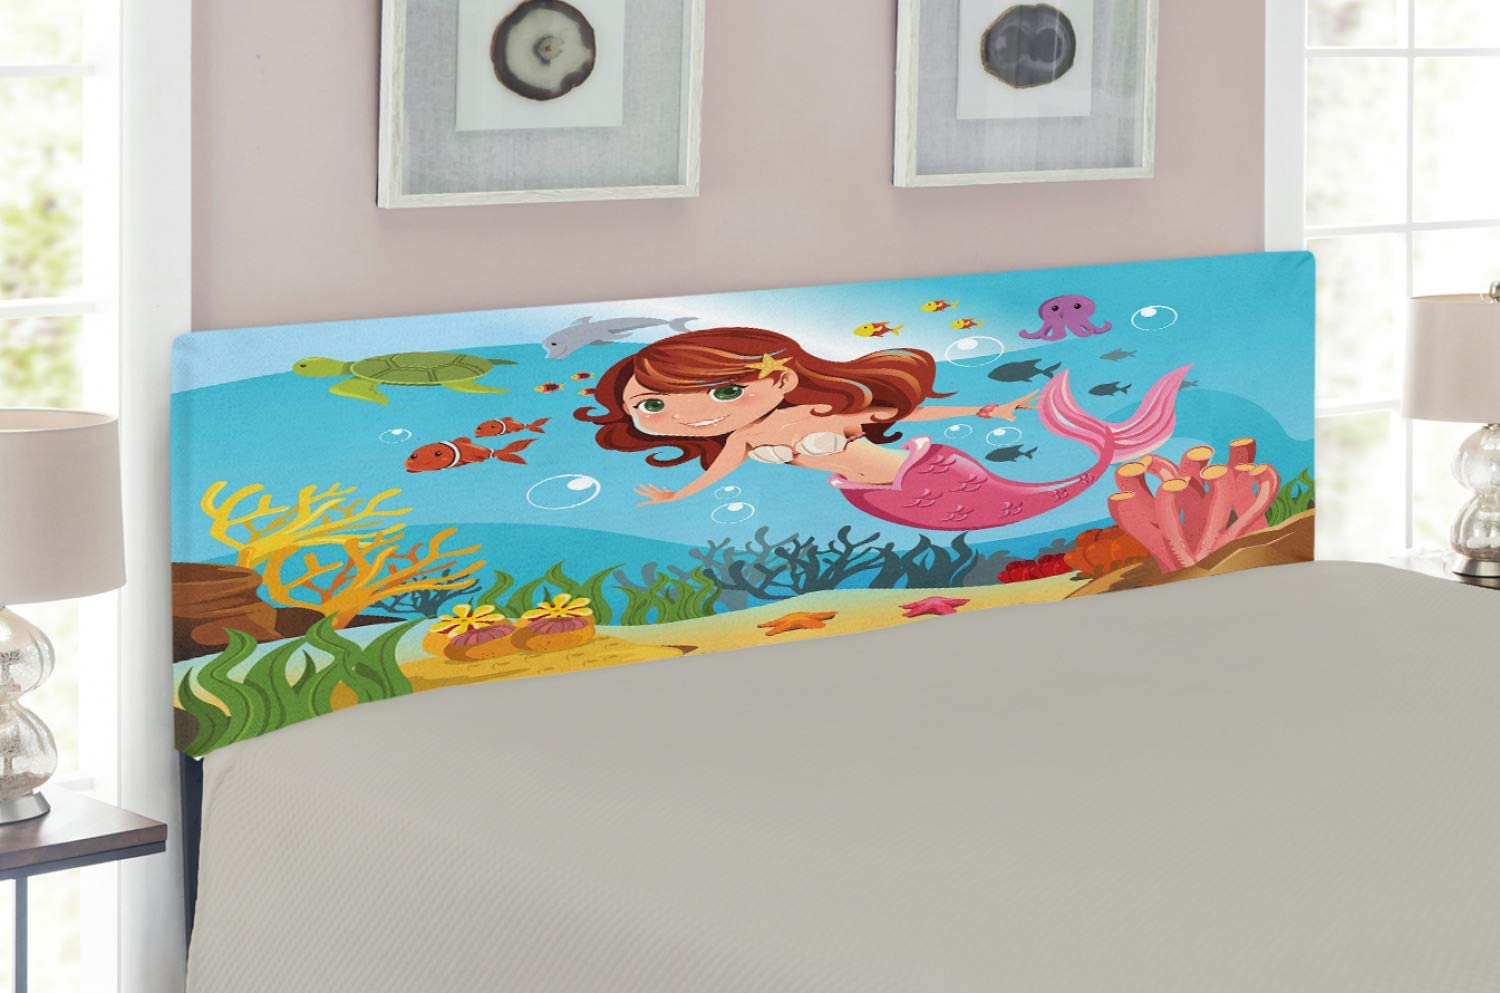 Ambesonne Underwater Headboard, Fairy Mermaid Swimming Underwater in The Ocean Smiles Cheerful Happiness Theme, Upholstered Decorative Metal Bed Headboard with Memory Foam, Queen Size, Blue Pink